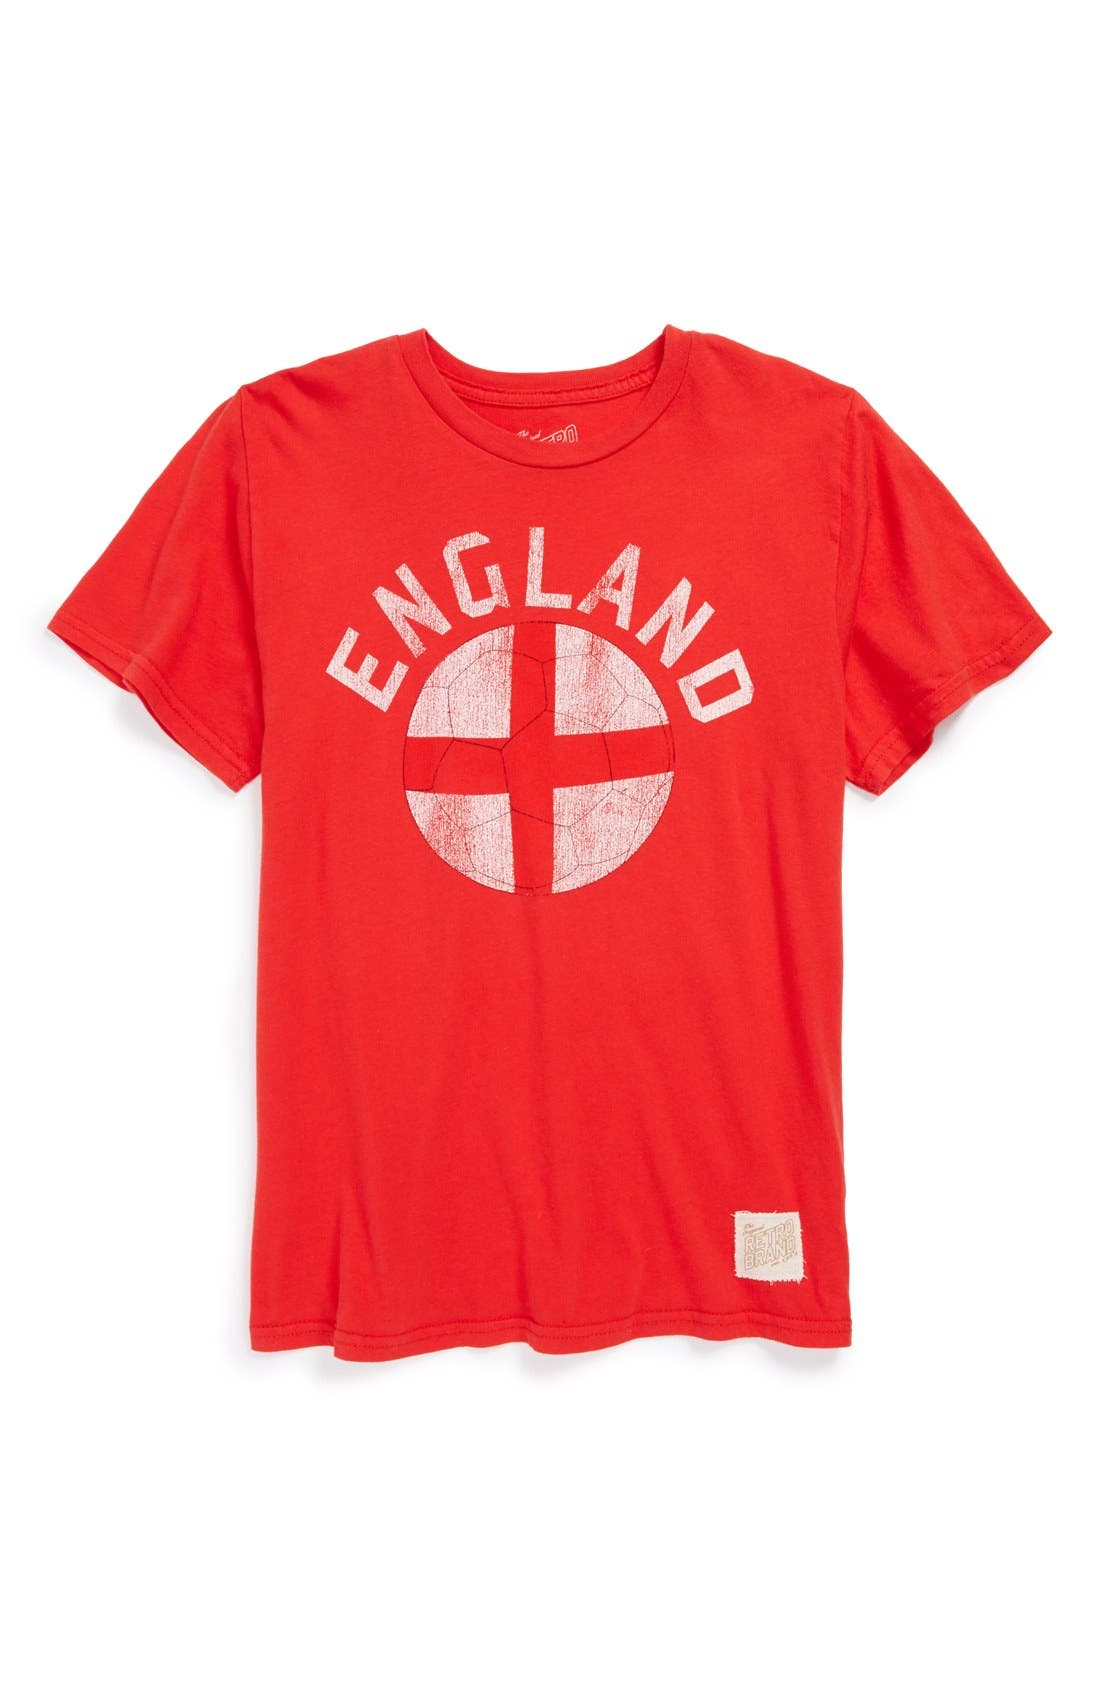 Main Image - Retro Brand 'England Soccer' Graphic T-Shirt (Big Boys)